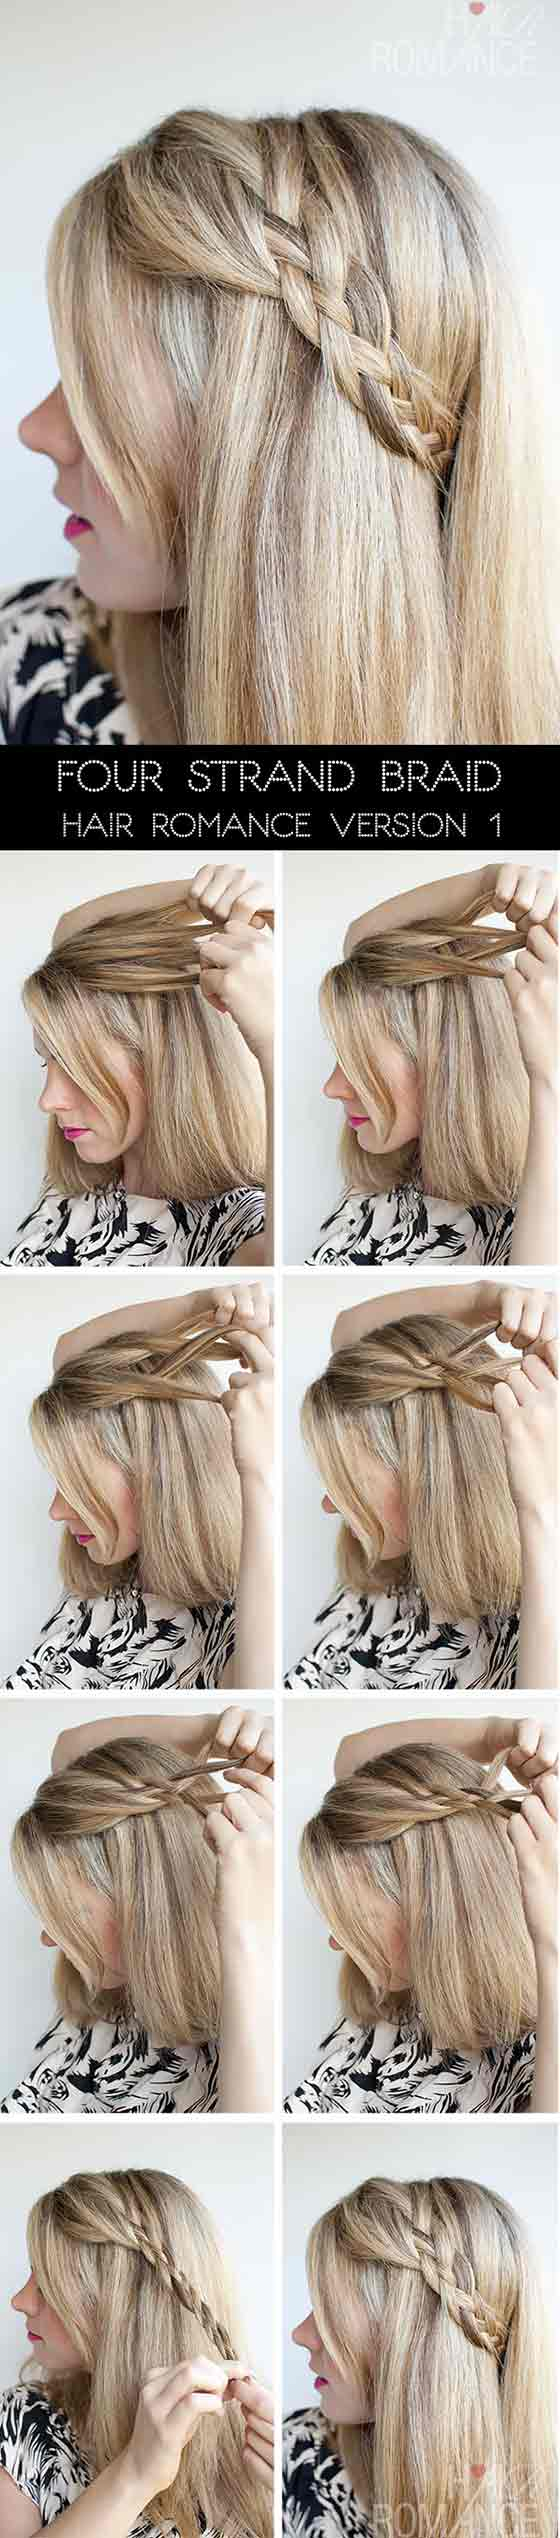 40 braided hairstyles for long hair four strand accent braid solutioingenieria Images